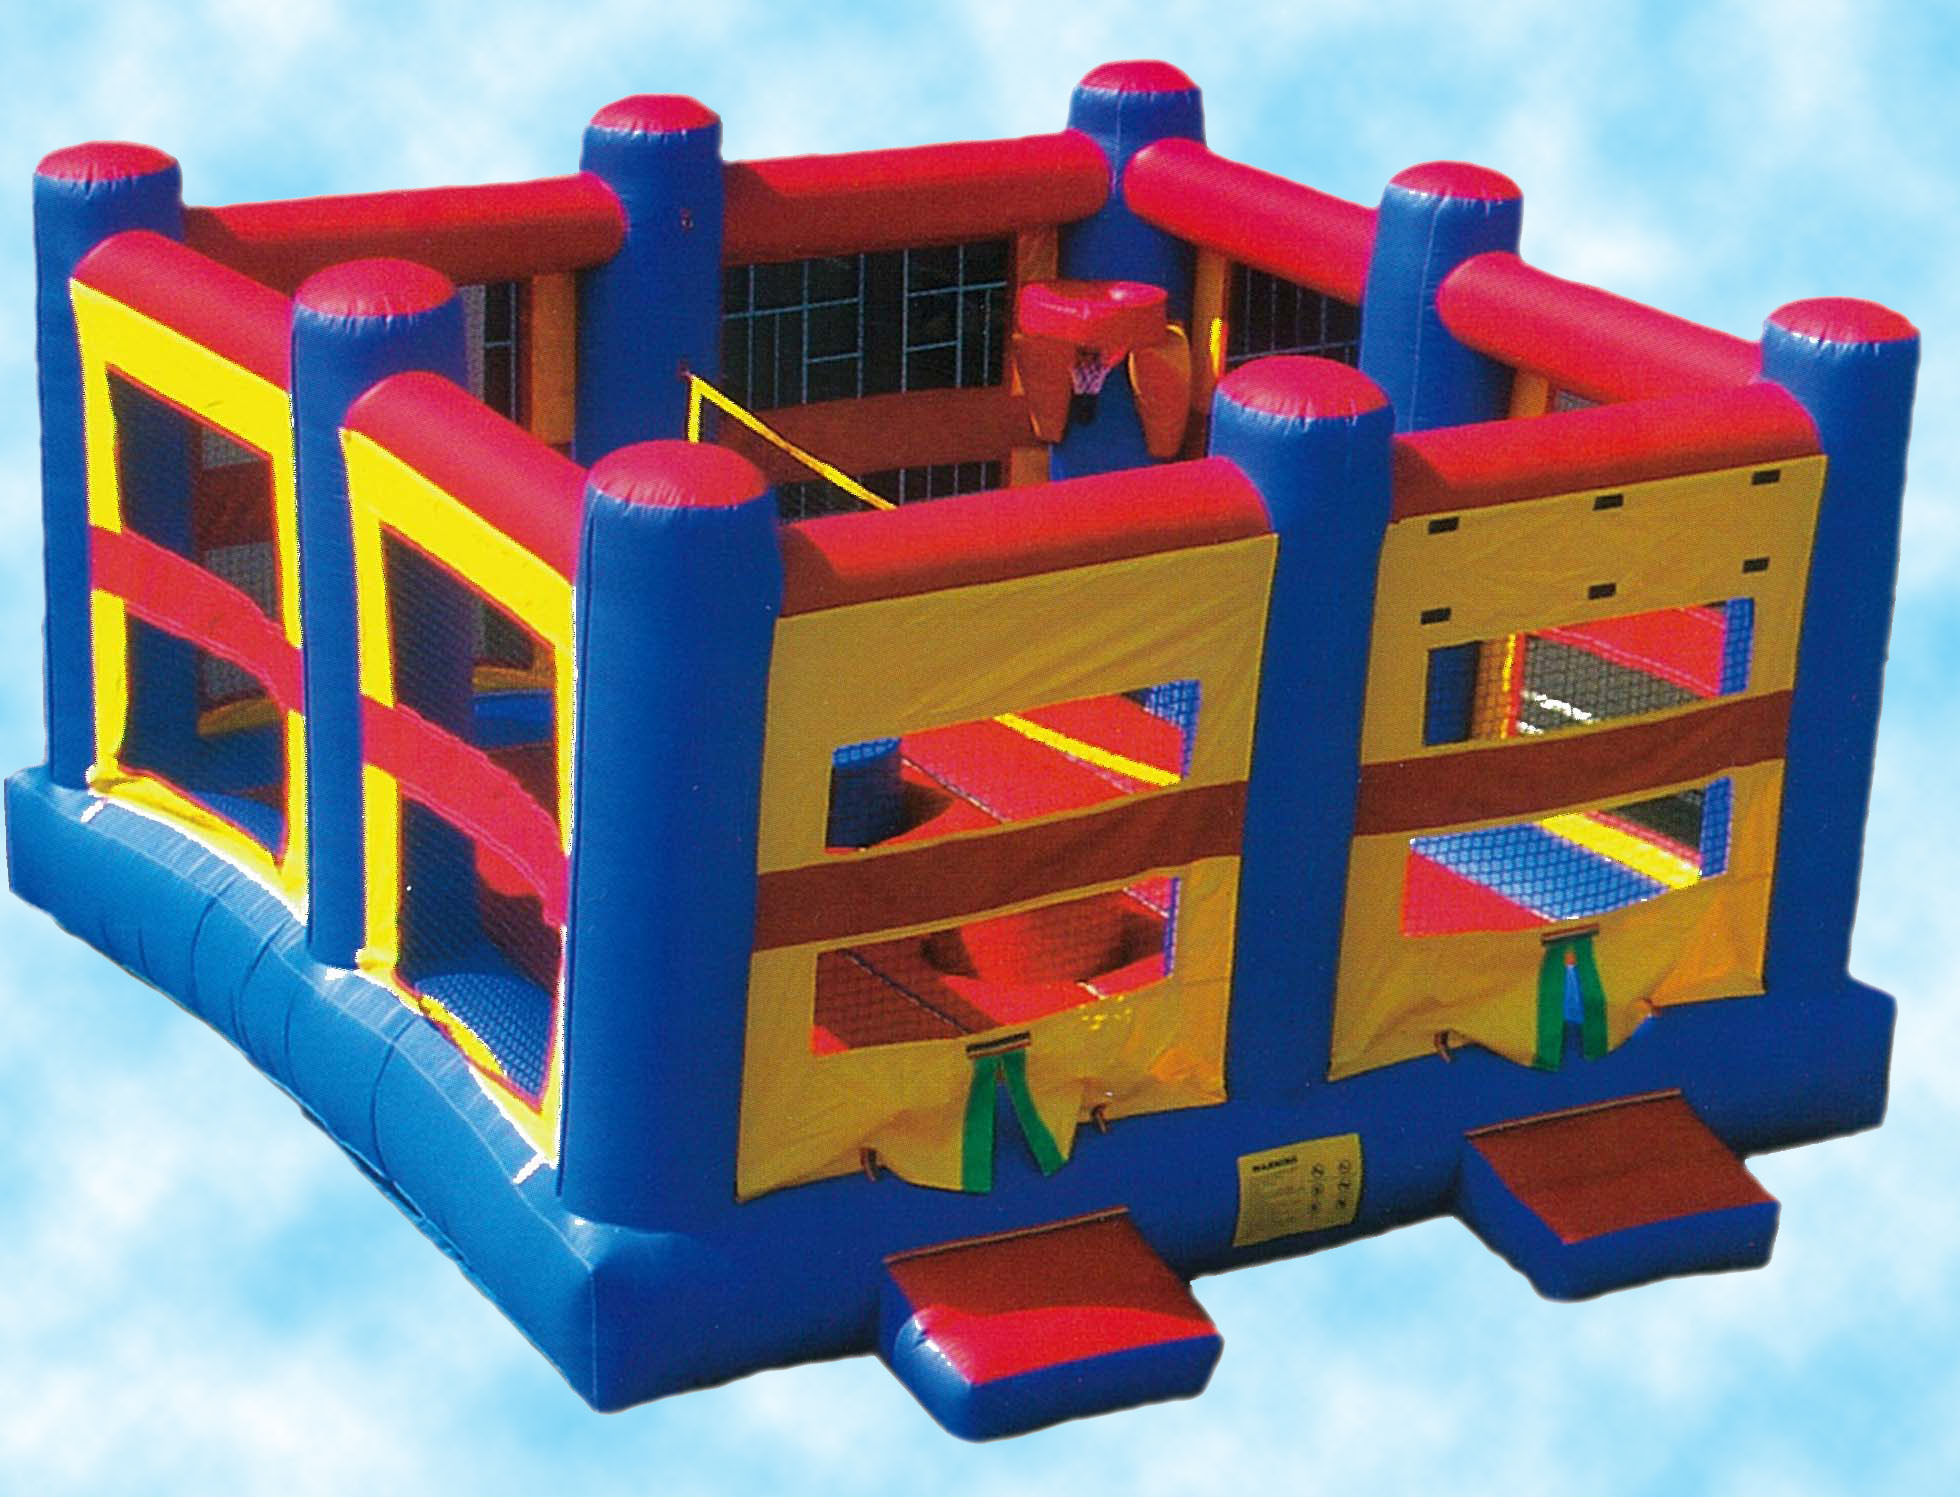 5-n-1sports combo$260.00 + tax - A 18 X 18' Bouncer that also includes volley ball, 2 basketball hoops, 2 Jousting sticks and pedestals and 2 pair of over sized, over stuffed boxing gloves.